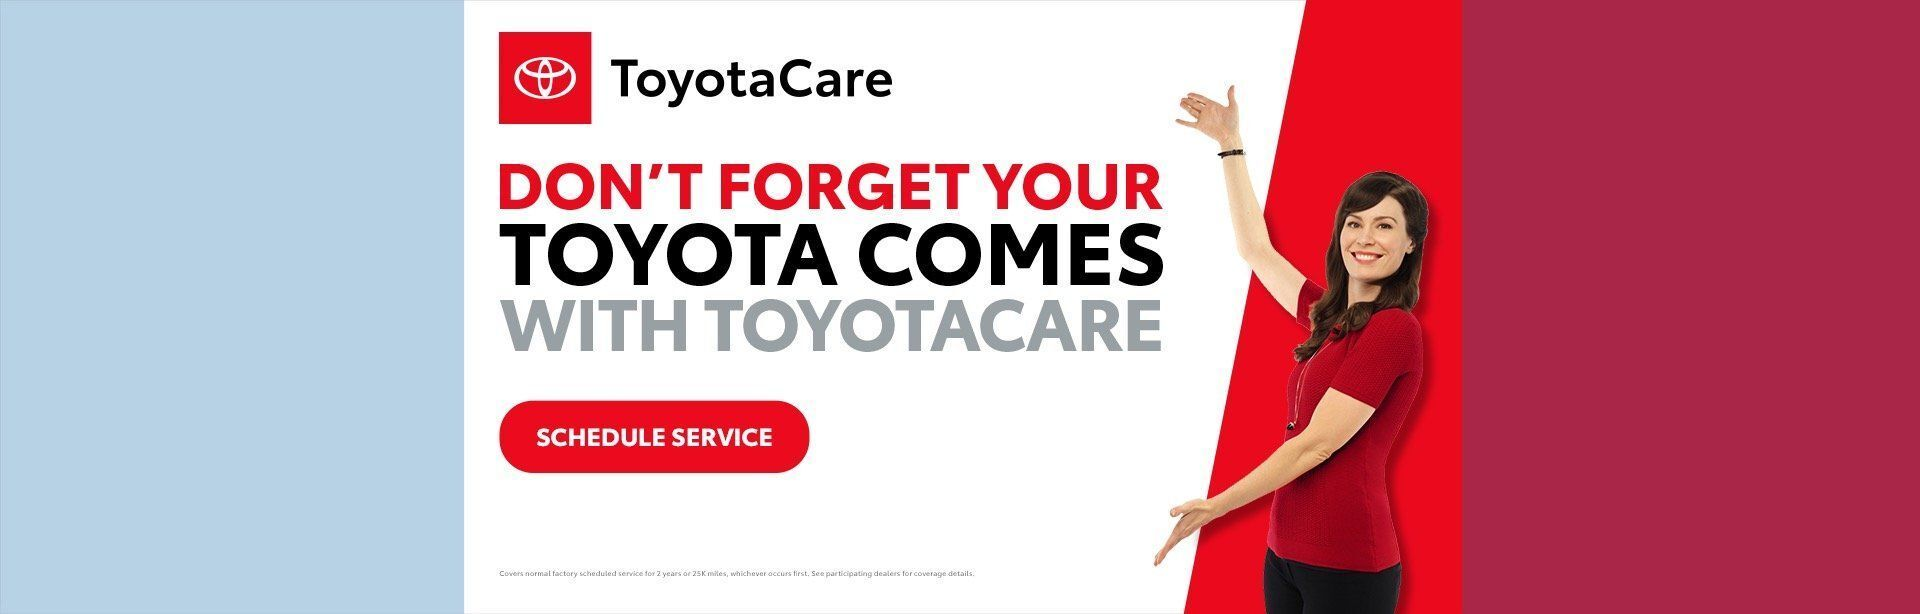 2019 - October - NAT - ToyotaCare Home Page